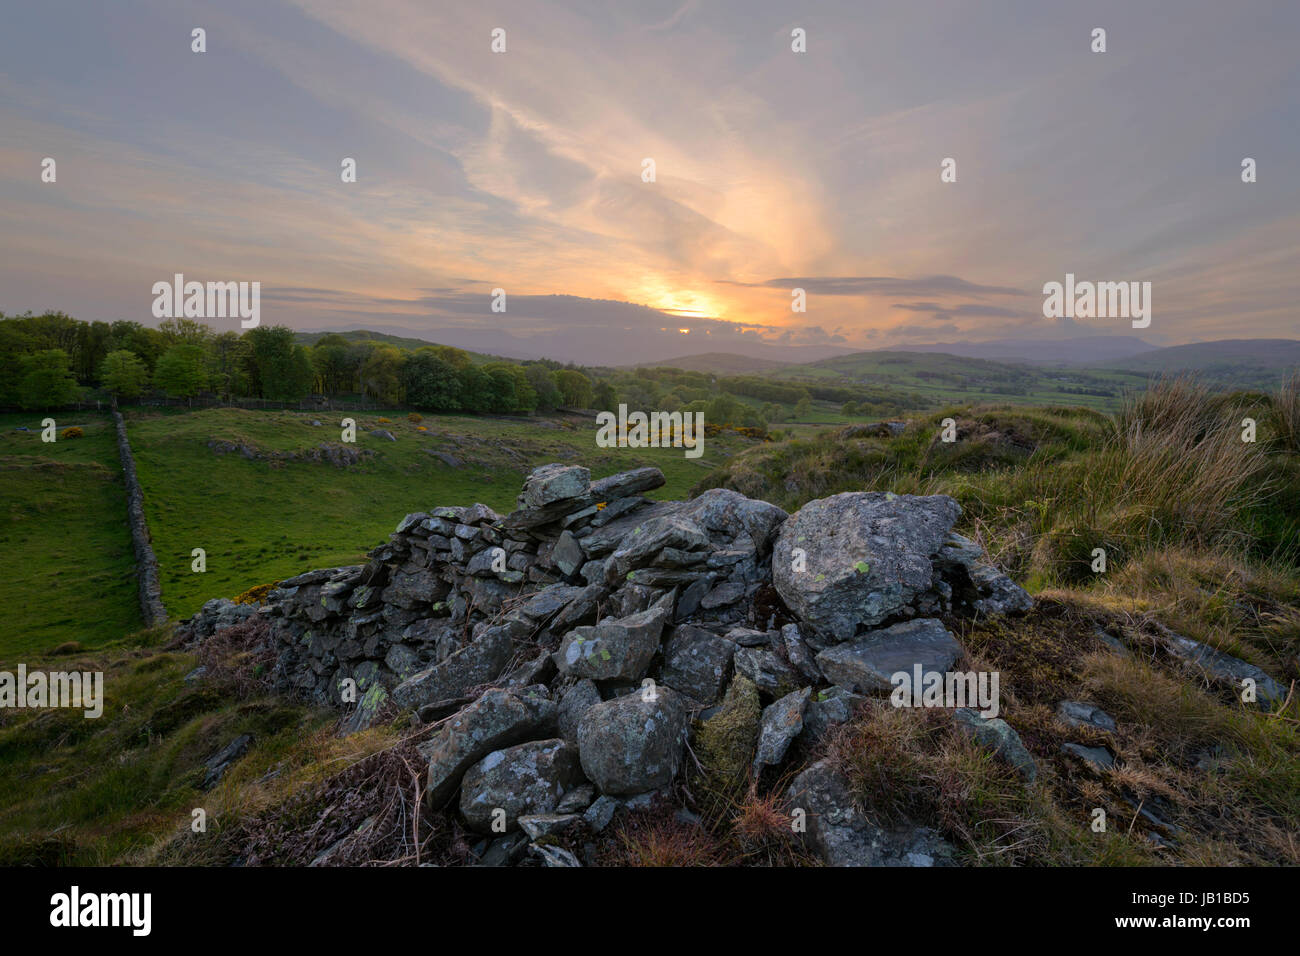 Setting sun in a rural setting near Crook Kendal in Cumbria - Stock Image